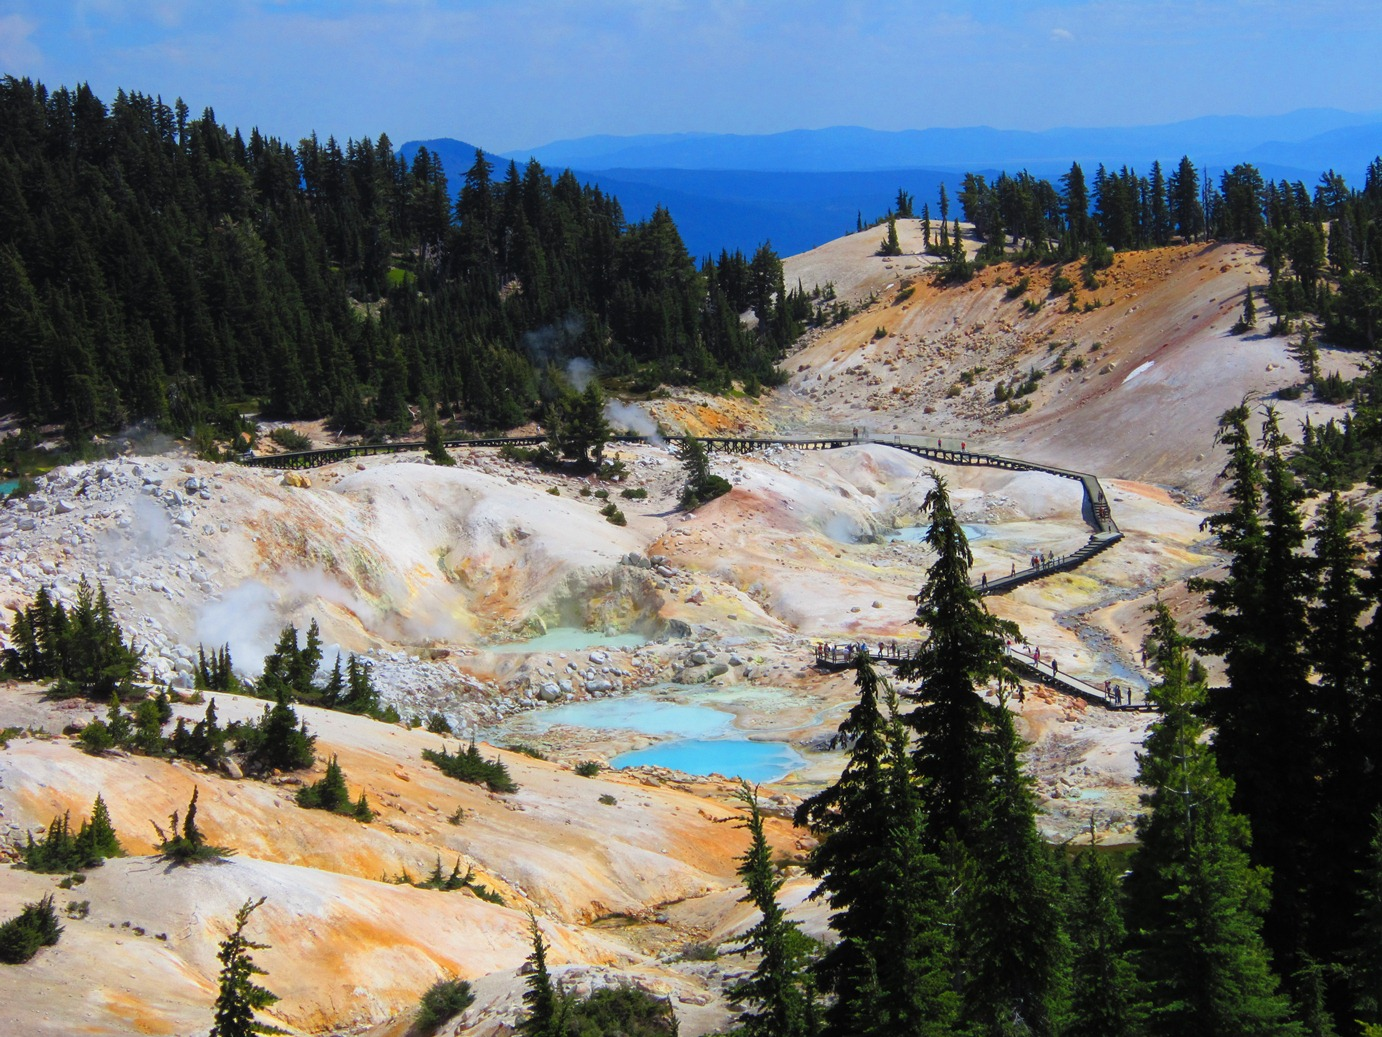 Hiking Bumpass Hell: Lassen Volcanic National Park